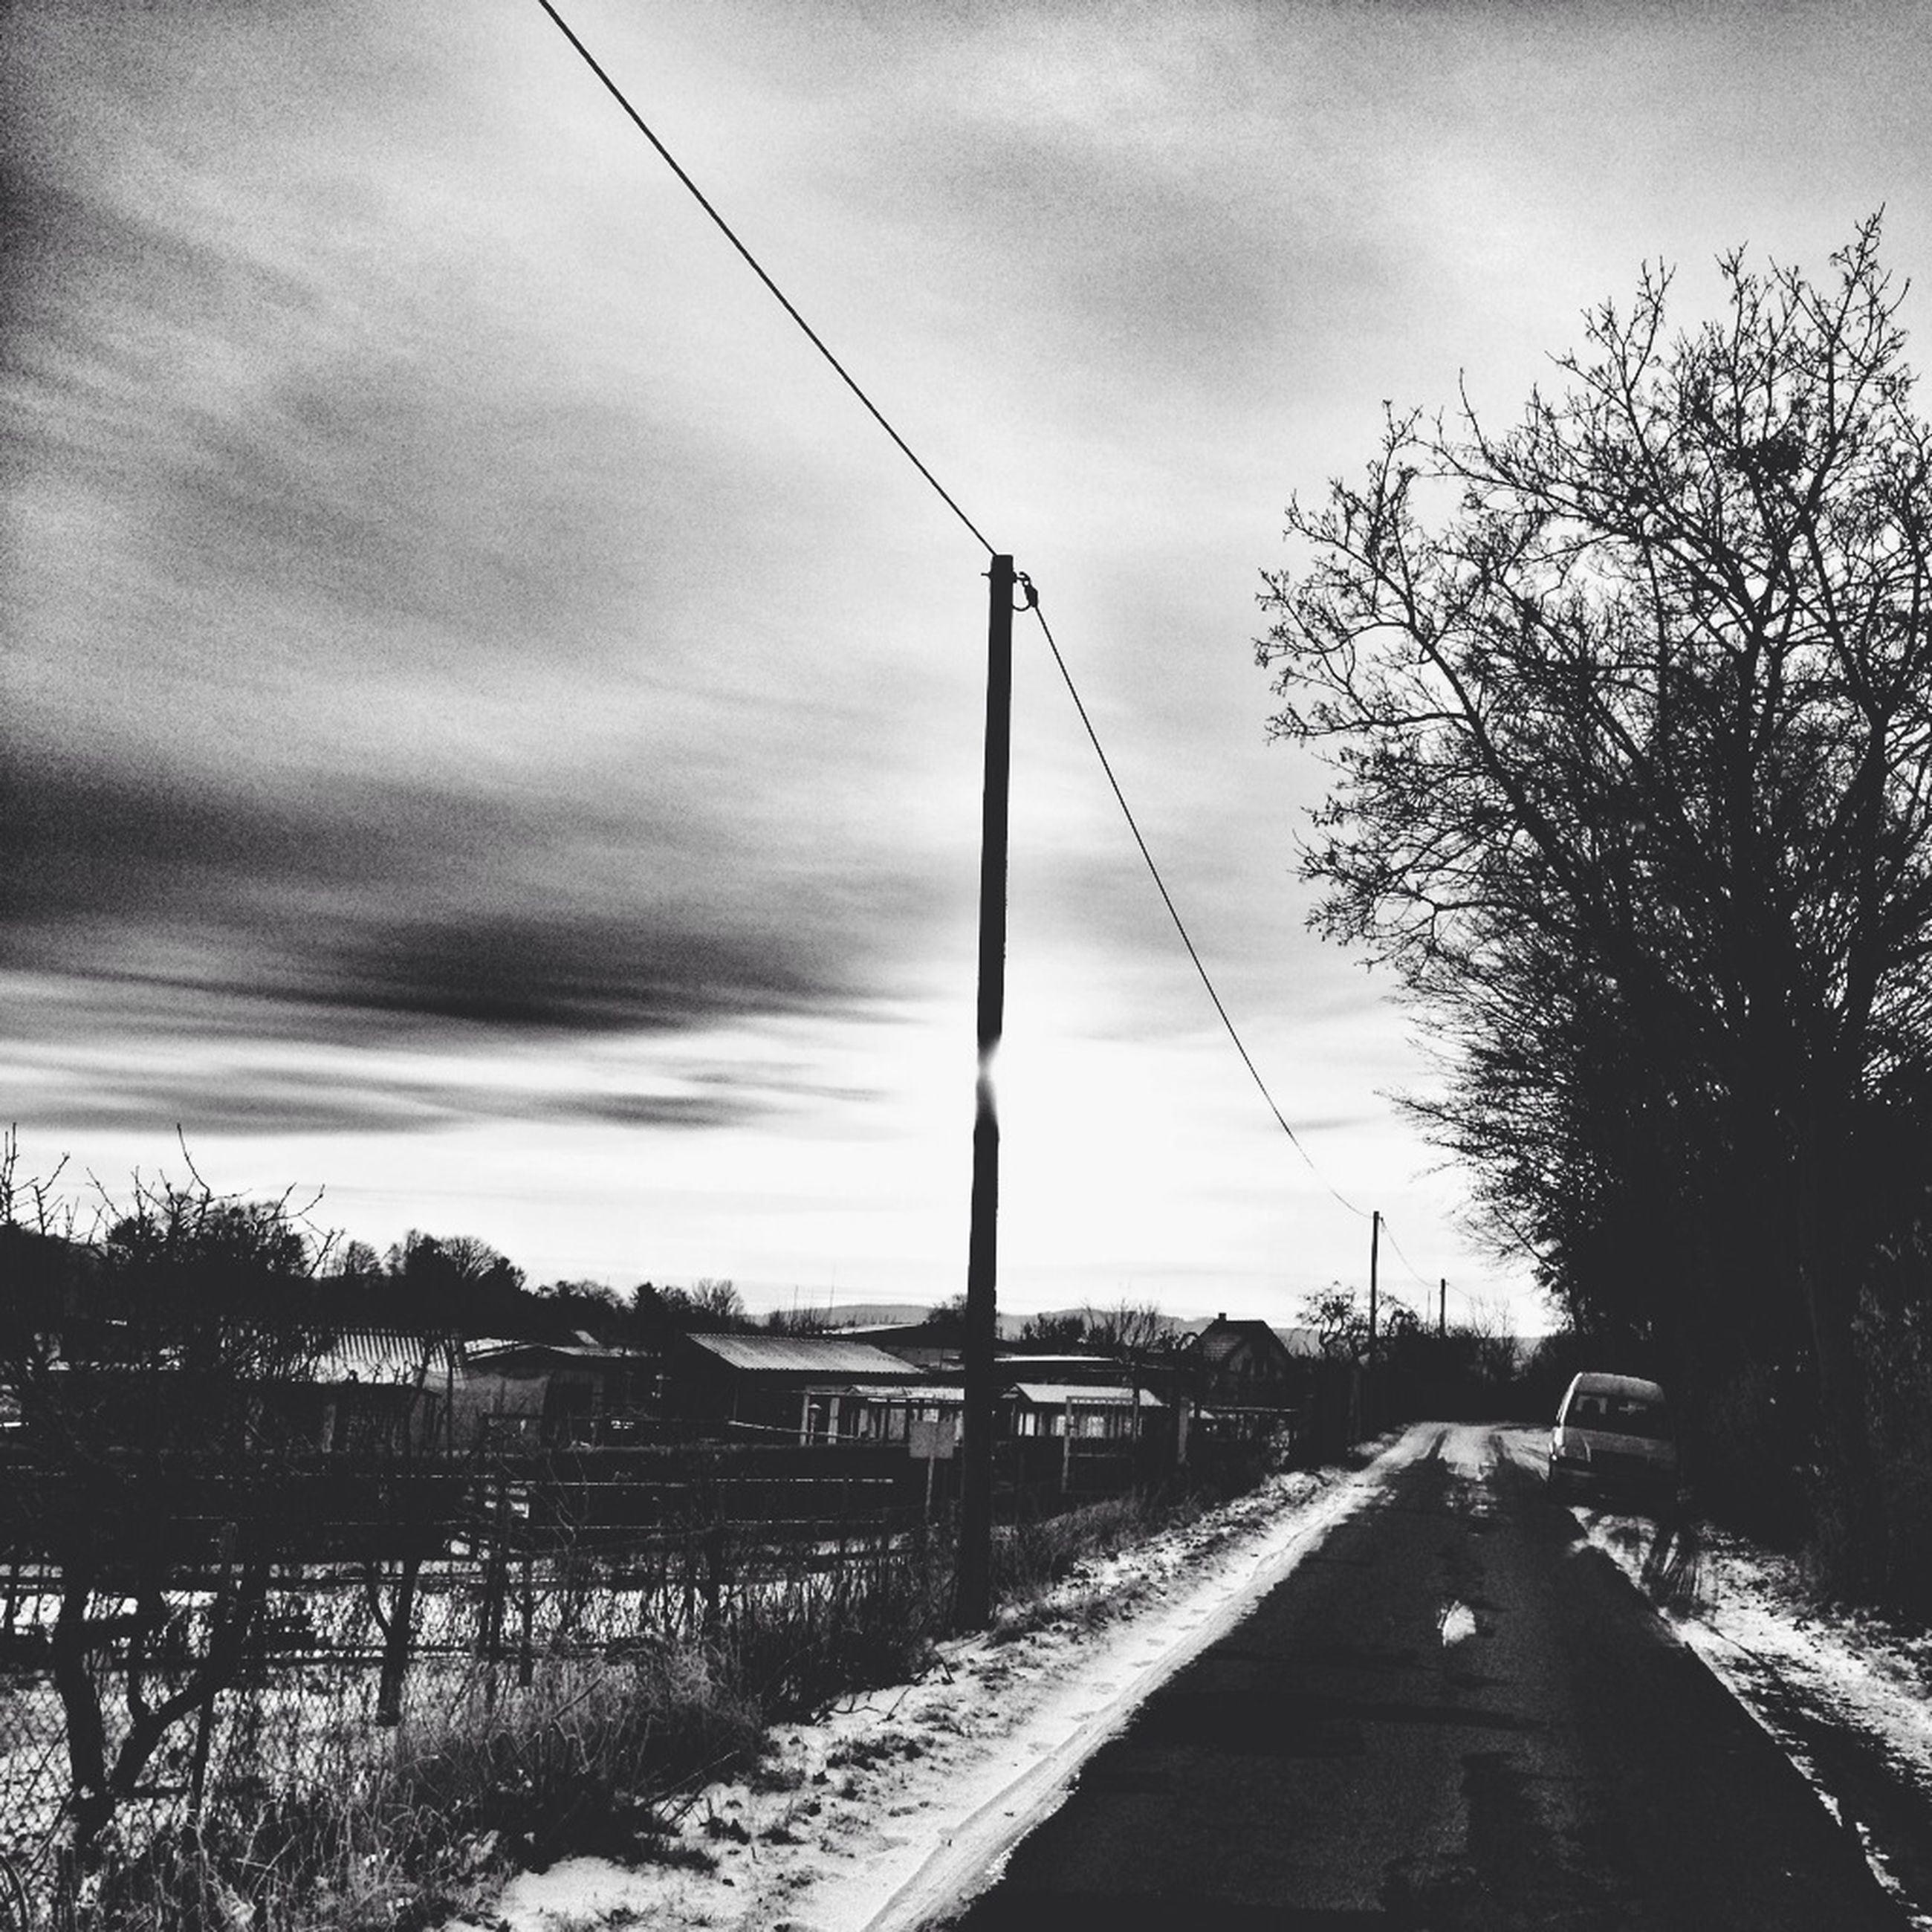 sky, the way forward, cloud - sky, cloudy, road, weather, tree, diminishing perspective, tranquility, transportation, cloud, nature, bare tree, tranquil scene, vanishing point, snow, winter, overcast, electricity pylon, outdoors